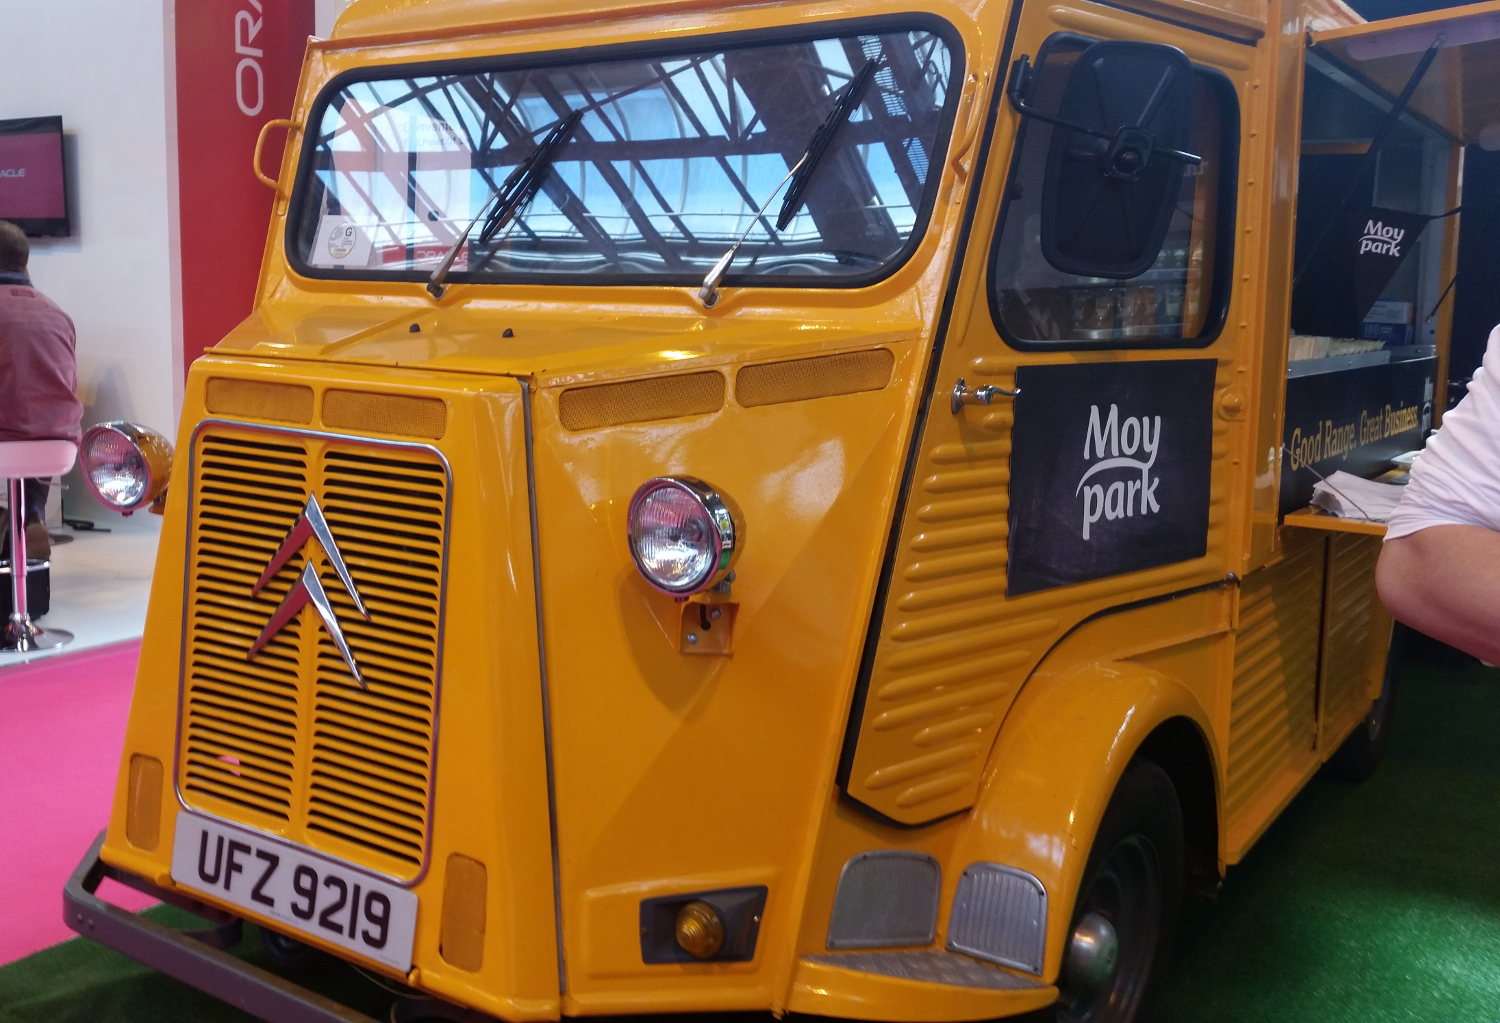 Moy Park Citroen HY Van at the National Convenience Show, front view